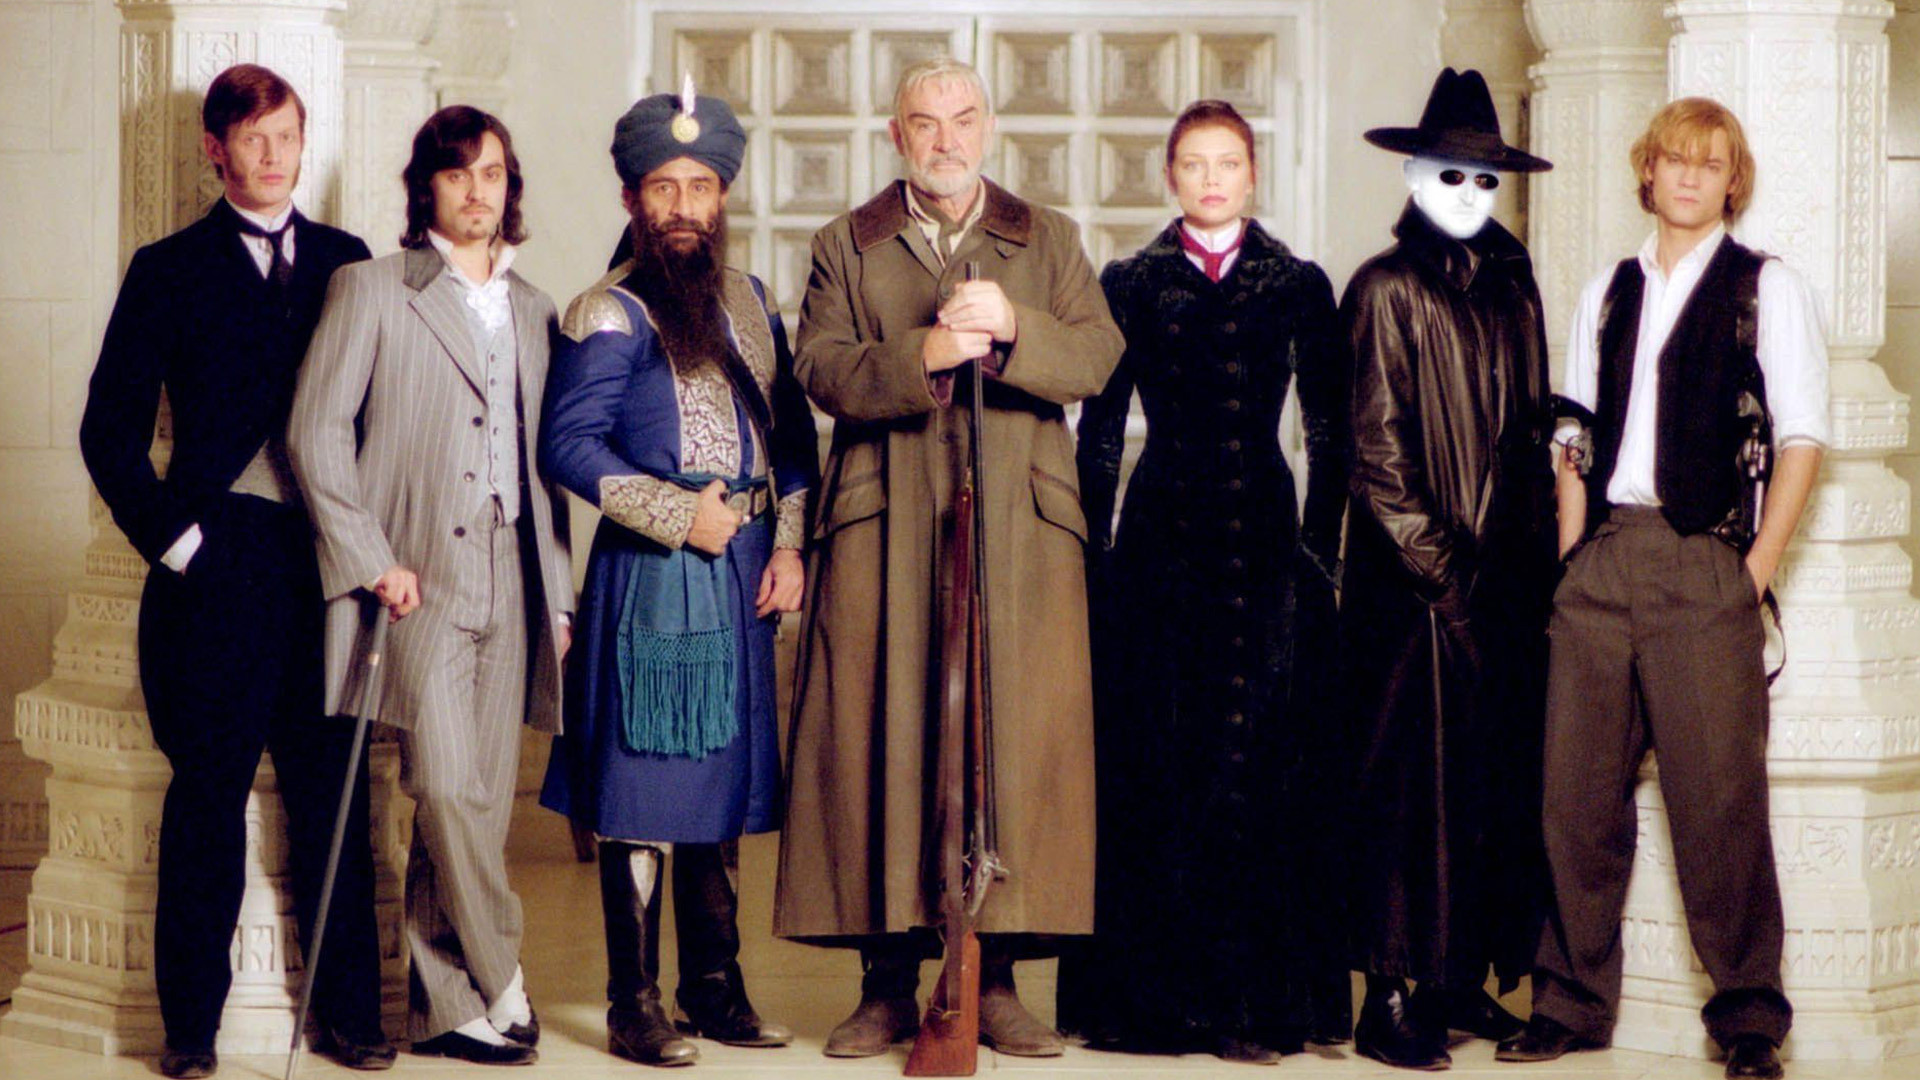 antiheroes images the league of extraordinary gentlemen film hd wallpaper and background. Black Bedroom Furniture Sets. Home Design Ideas